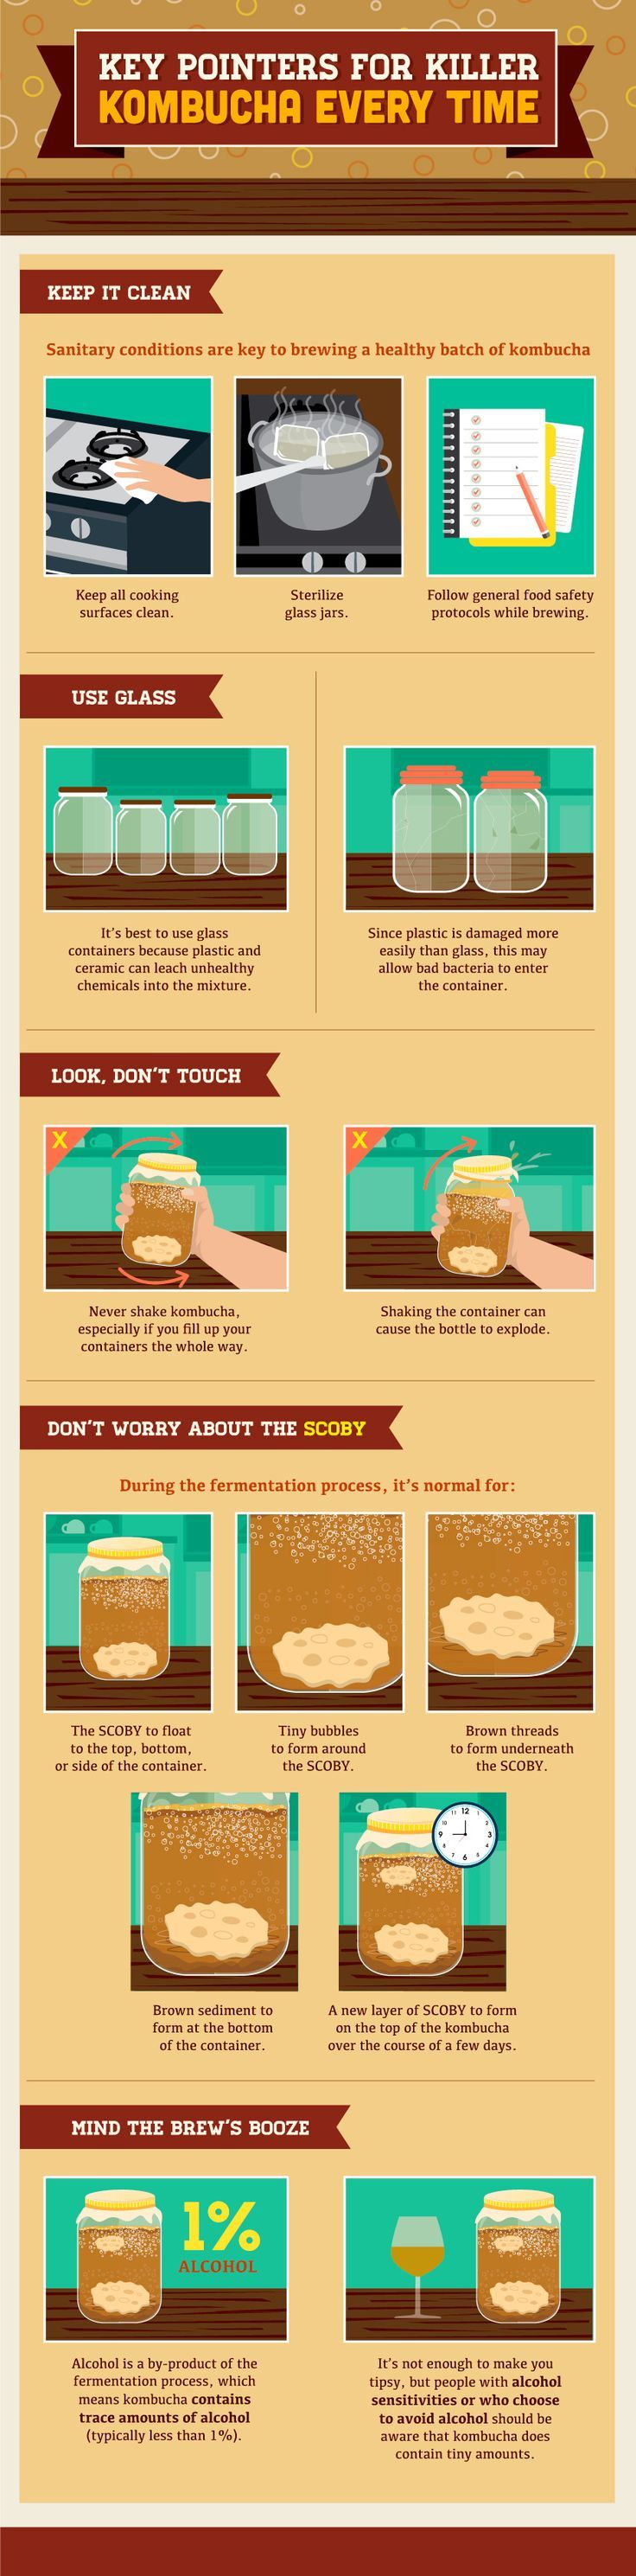 Tips for kombucha